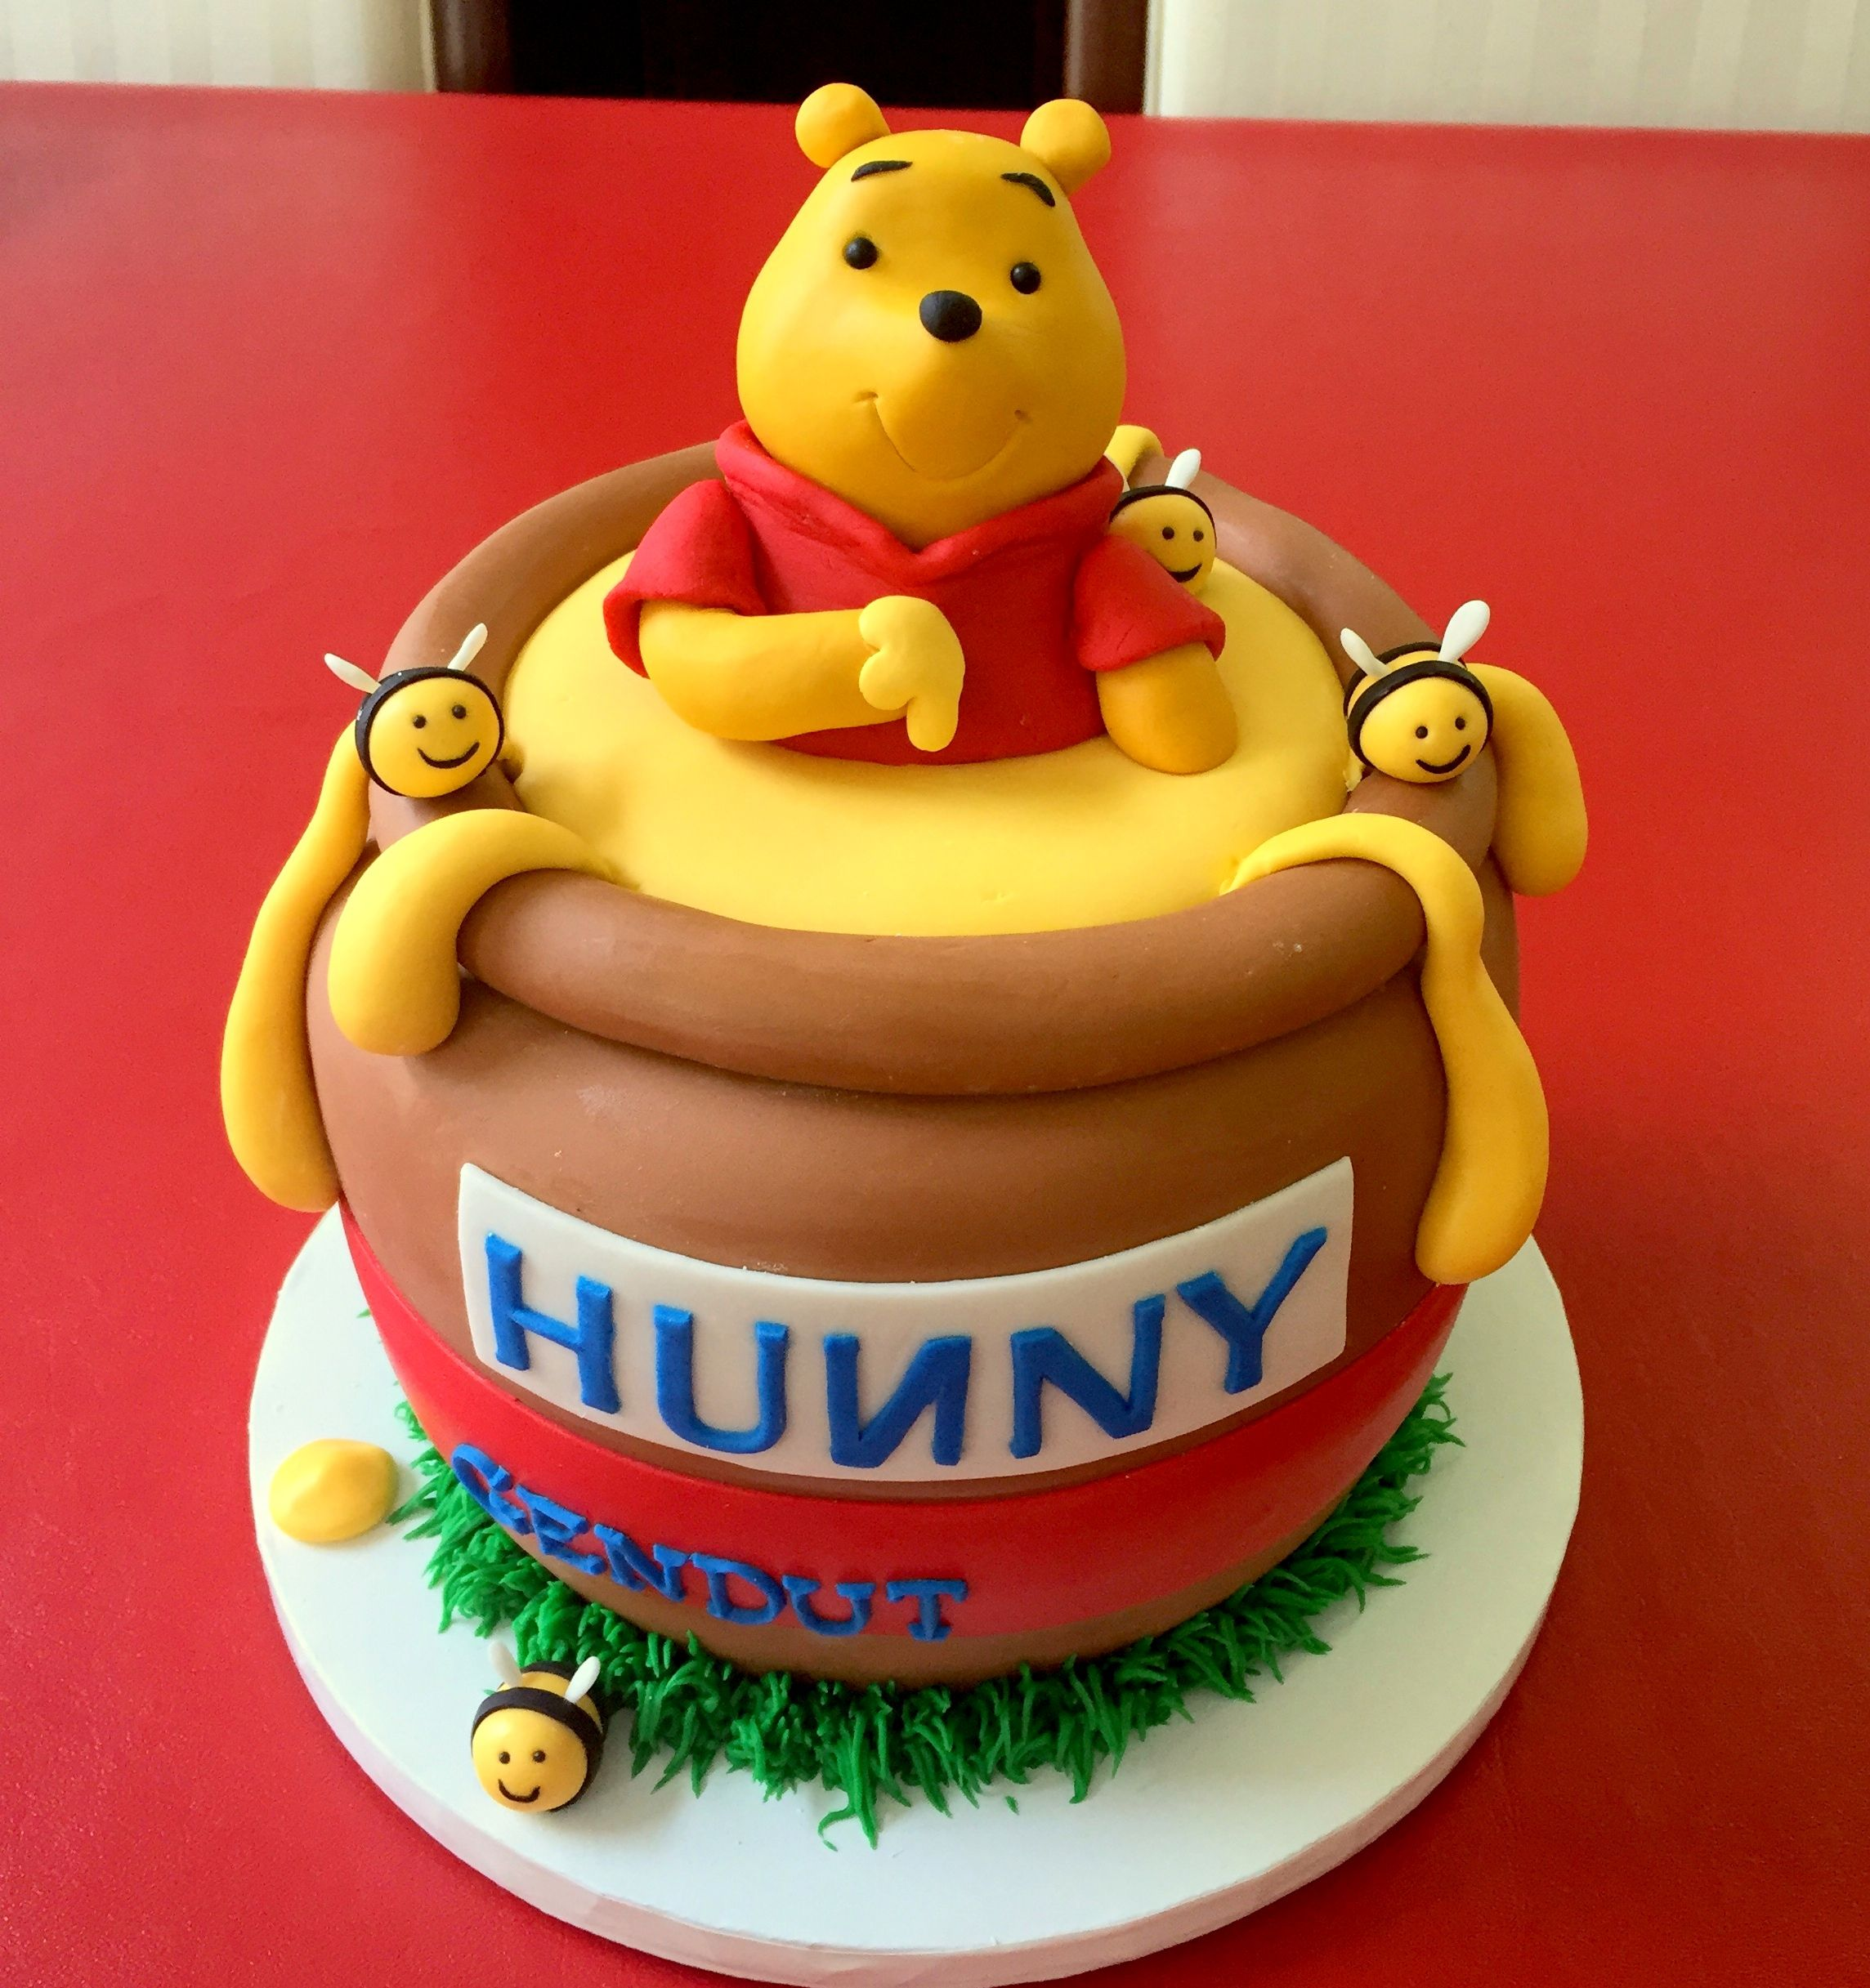 Cake Design Winnie Pooh : Winnie the Pooh honey pot cake by Cake Couture. Cake ...